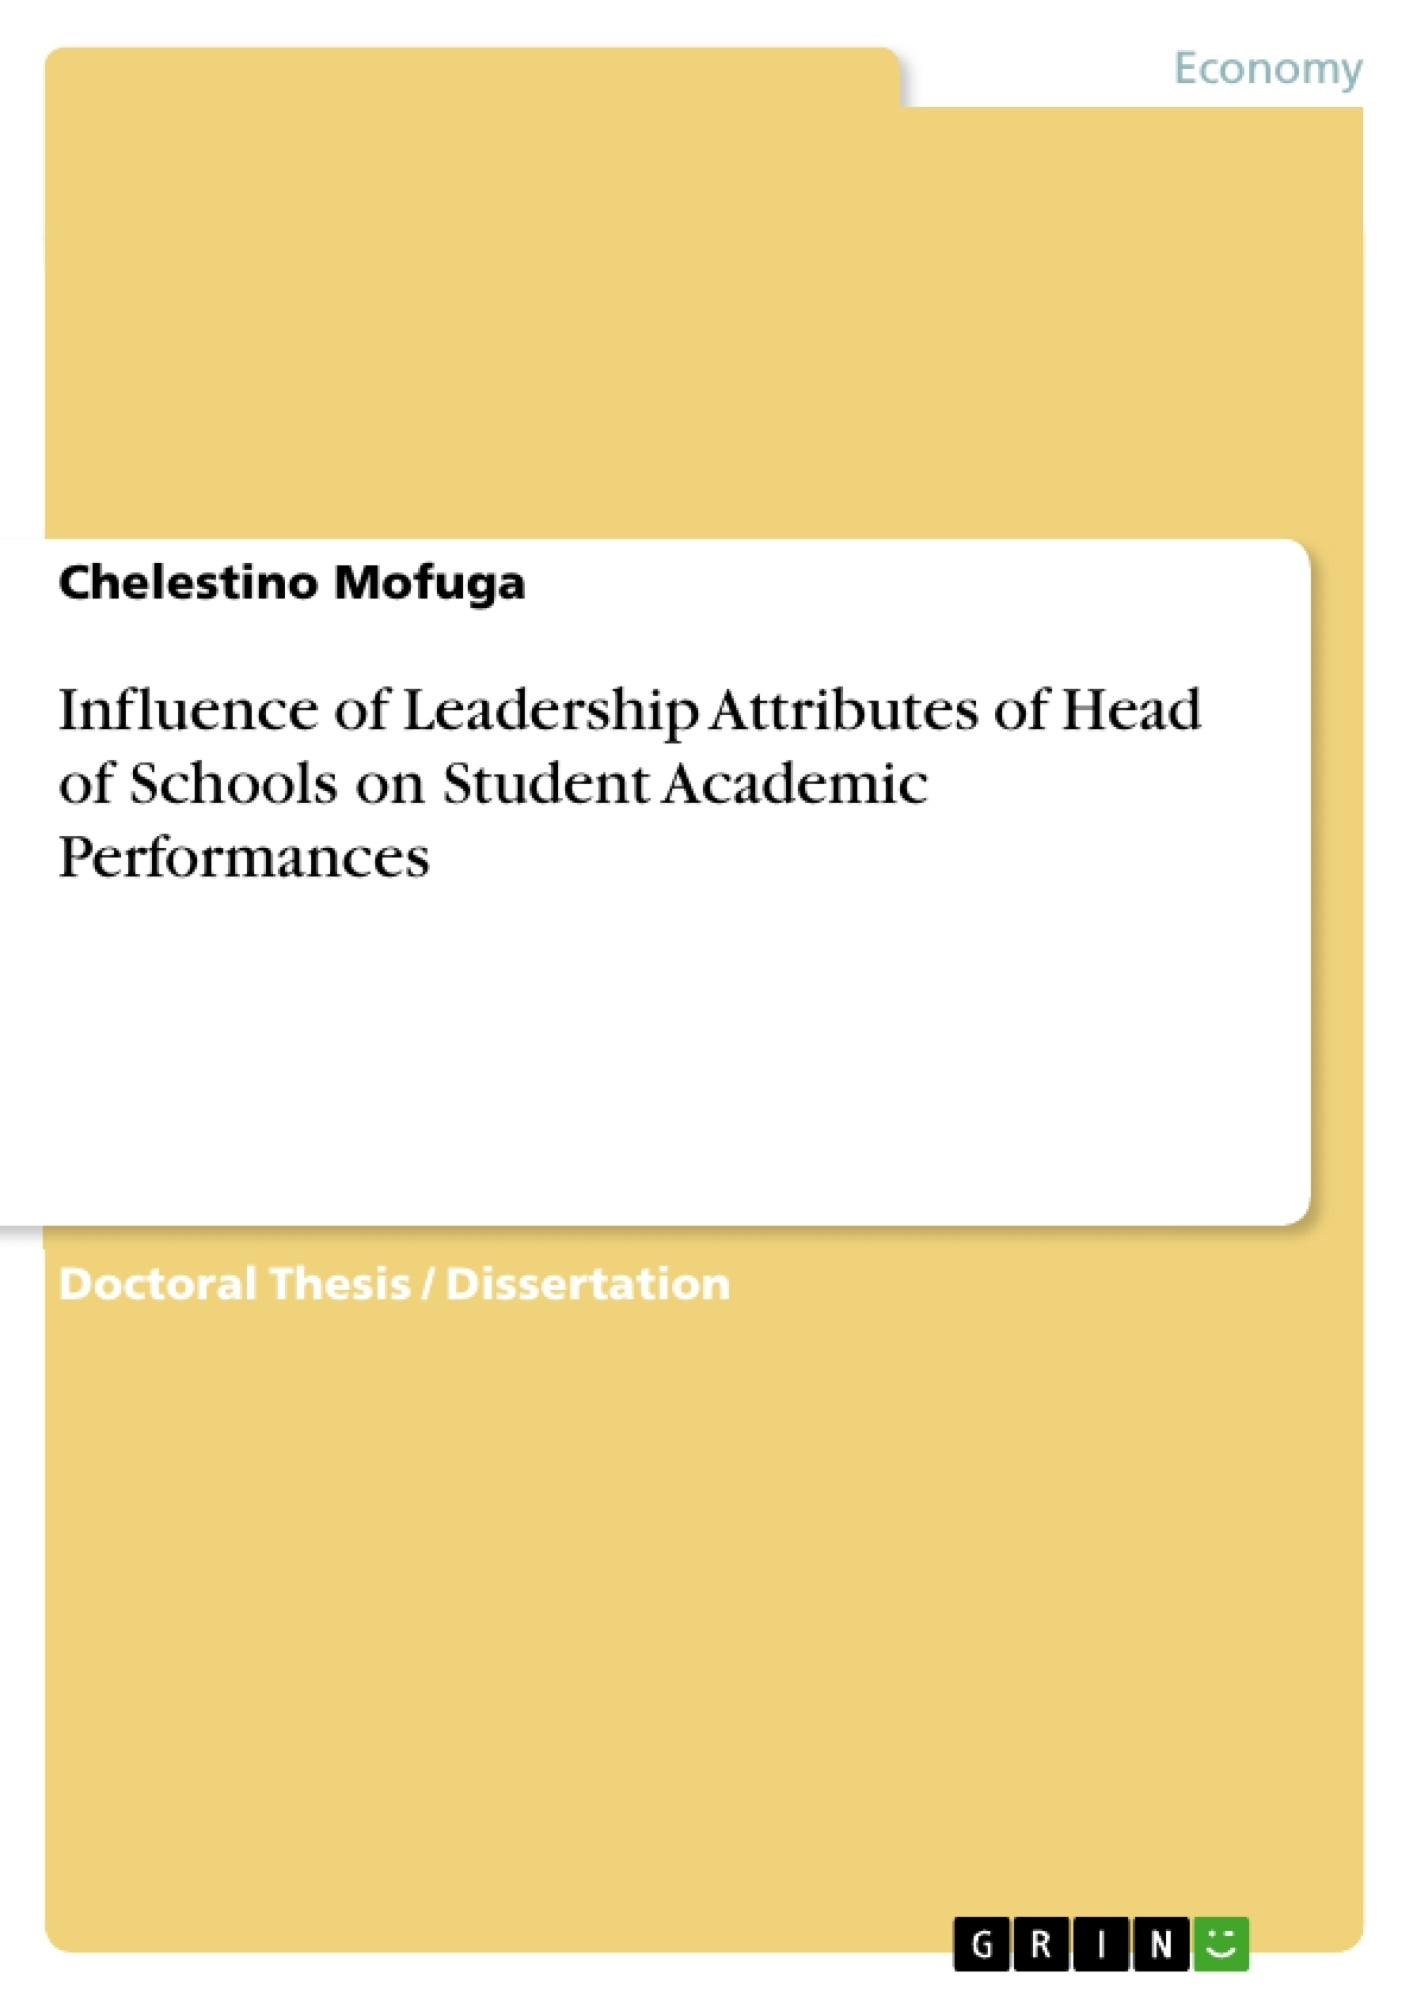 Title: Influence of Leadership Attributes of Head of Schools on Student Academic Performances